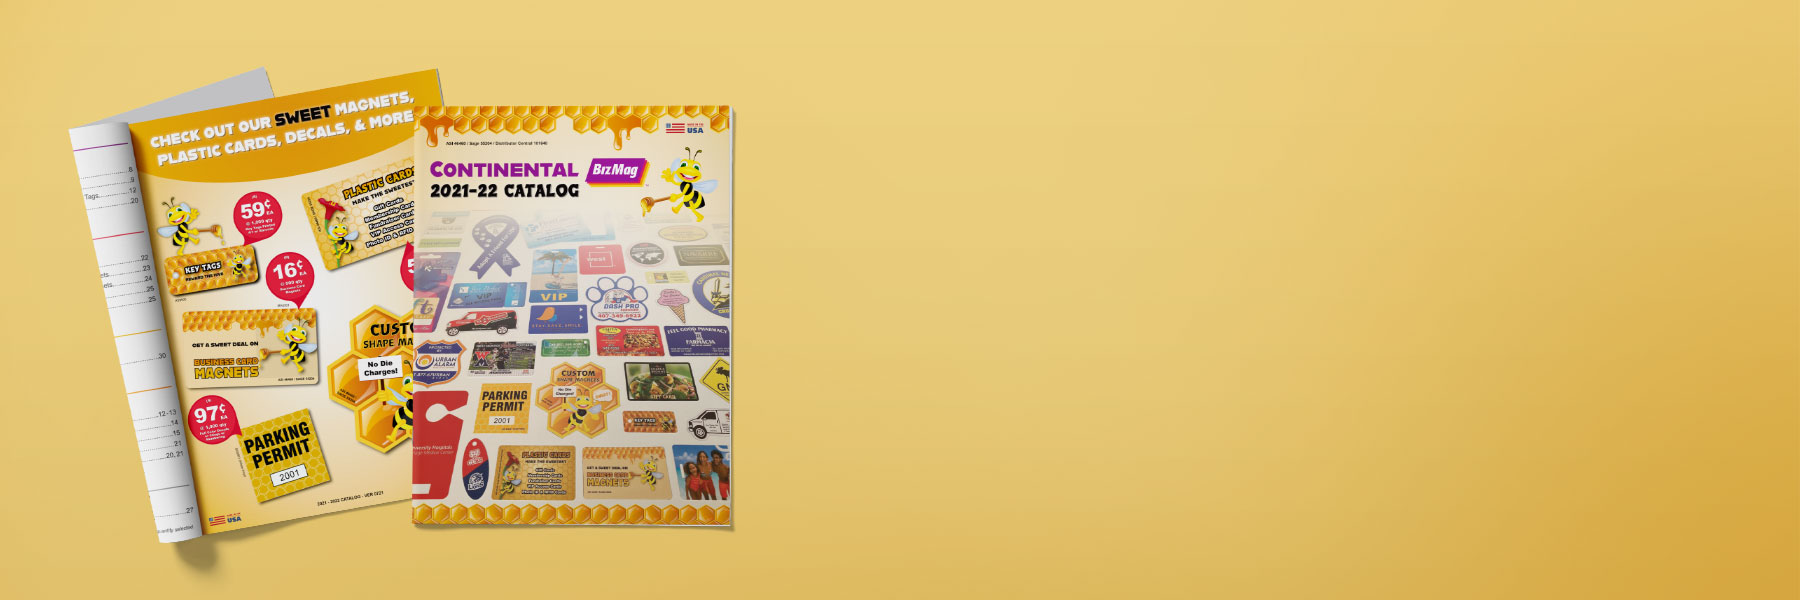 Wholesale Printing Catalog for Resellers